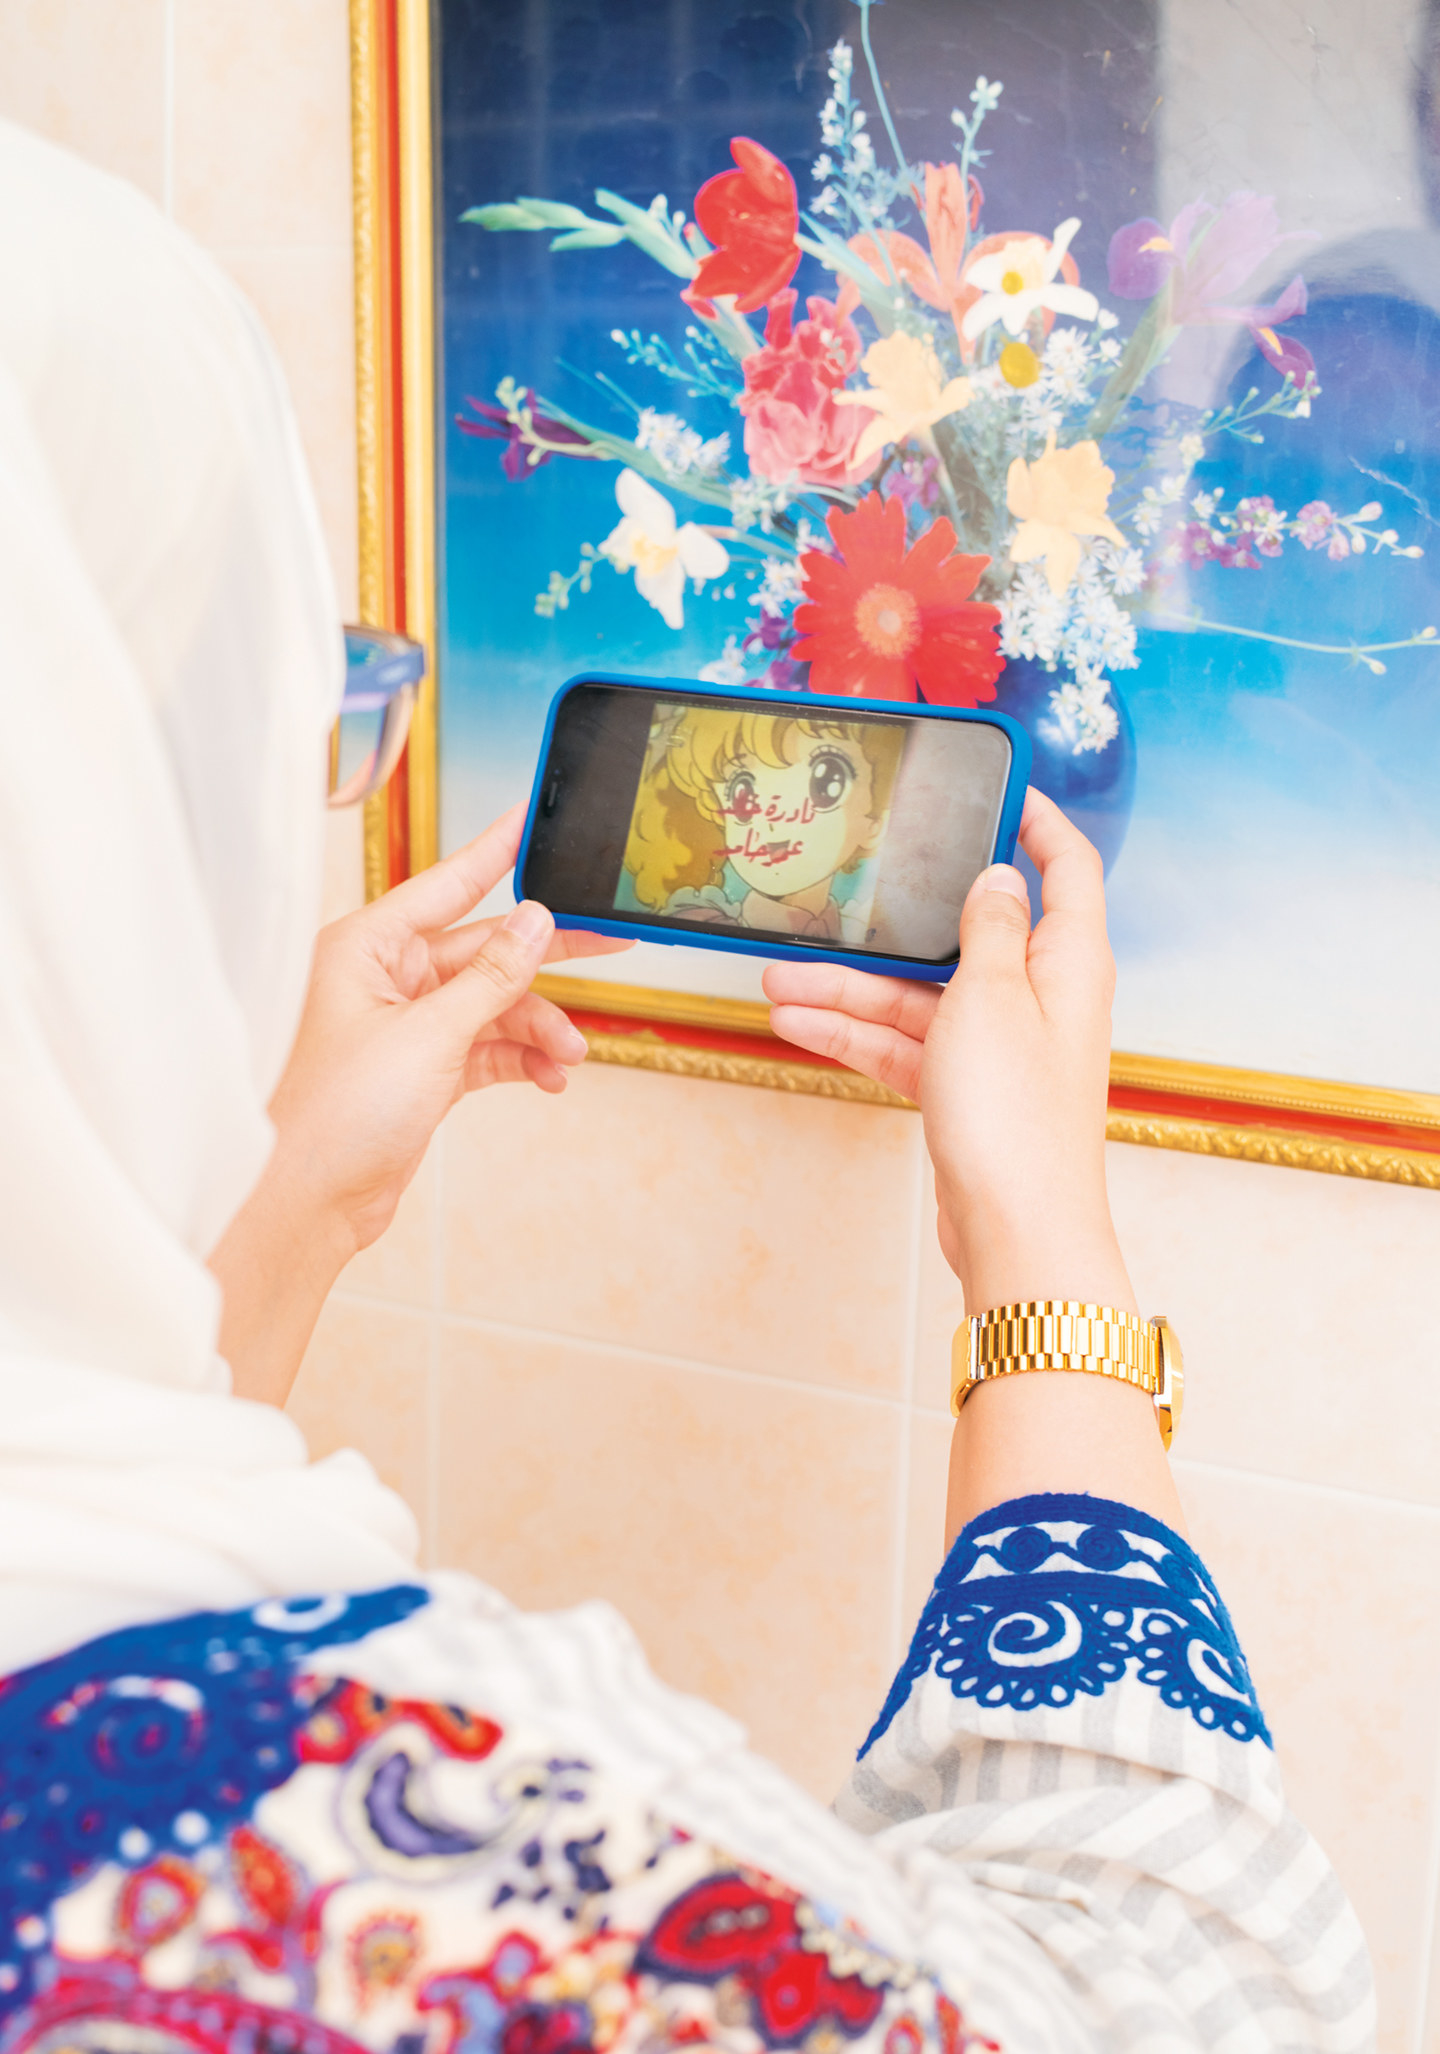 A woman holding up a phone with anime playing on the screen